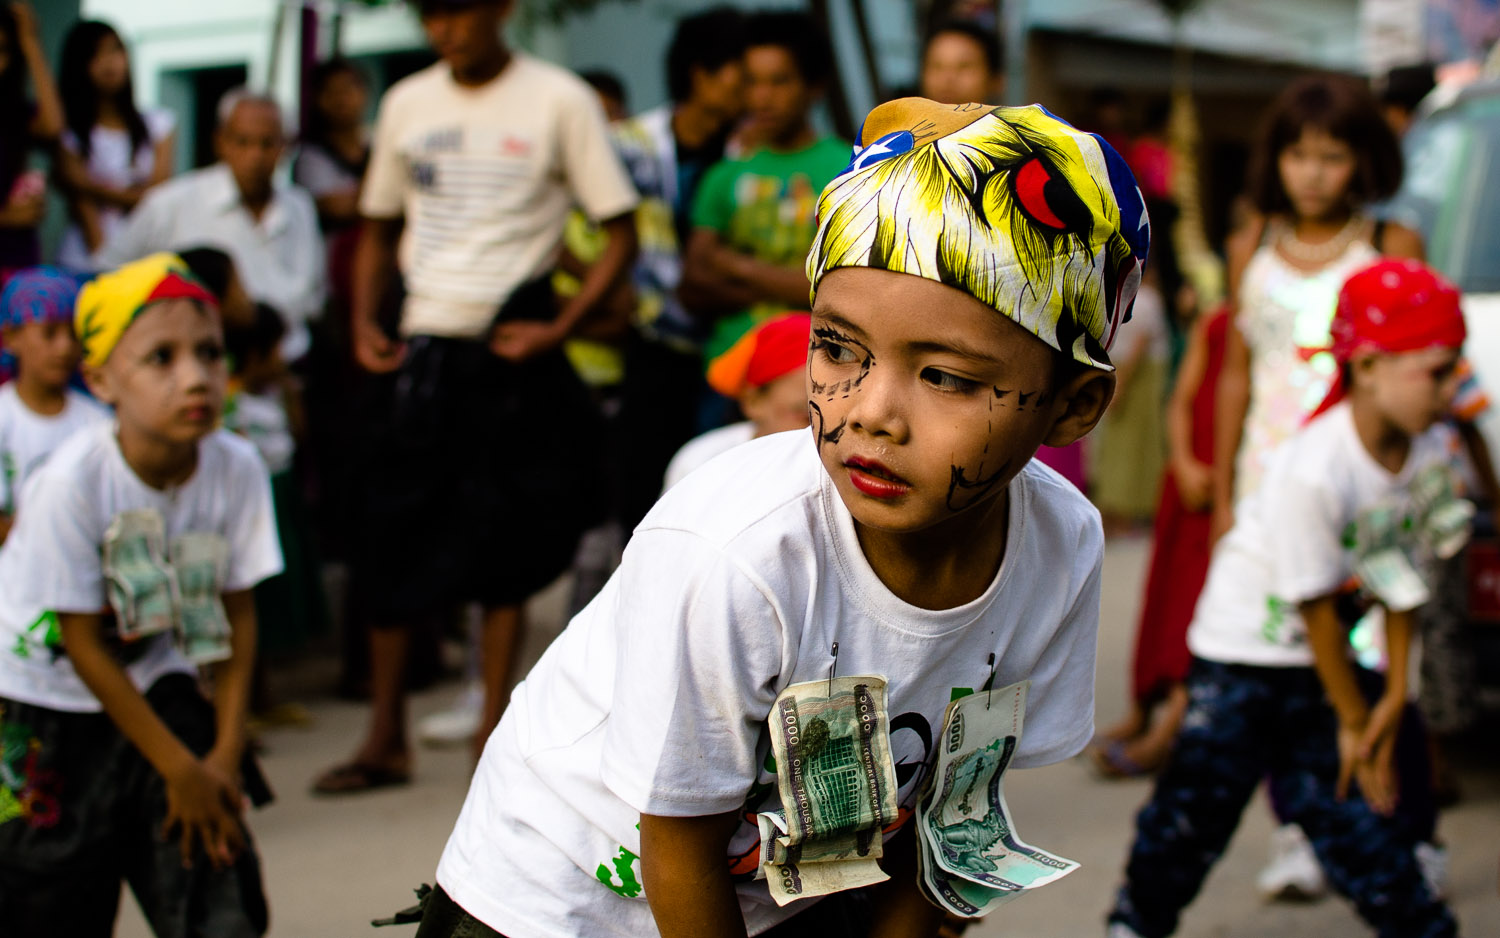 Young dancer showing his moves as part of the procession for the Shwezigon Pagoda Festival in Nyaung U (Bagan), Myanmar / Burma.  © Dustin Main 2014